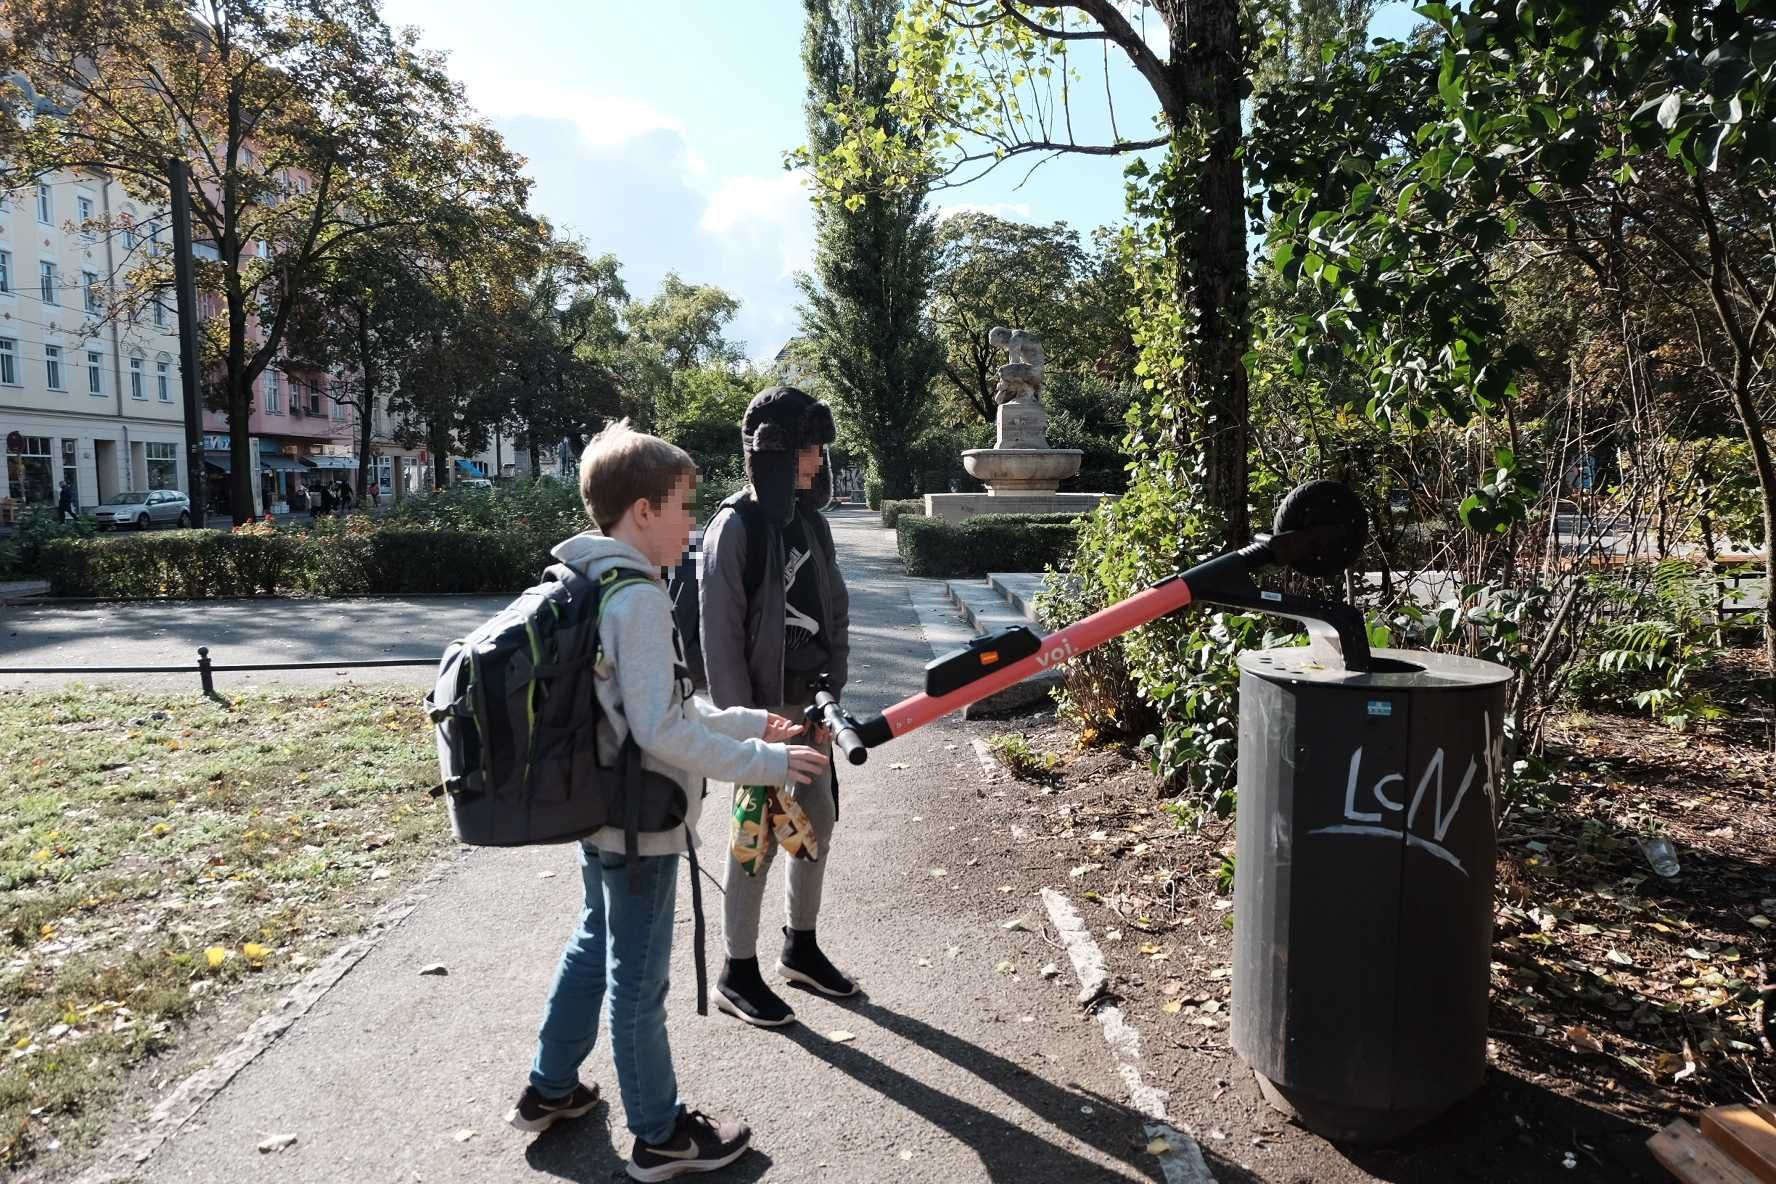 Kids disposing of an e-scooter